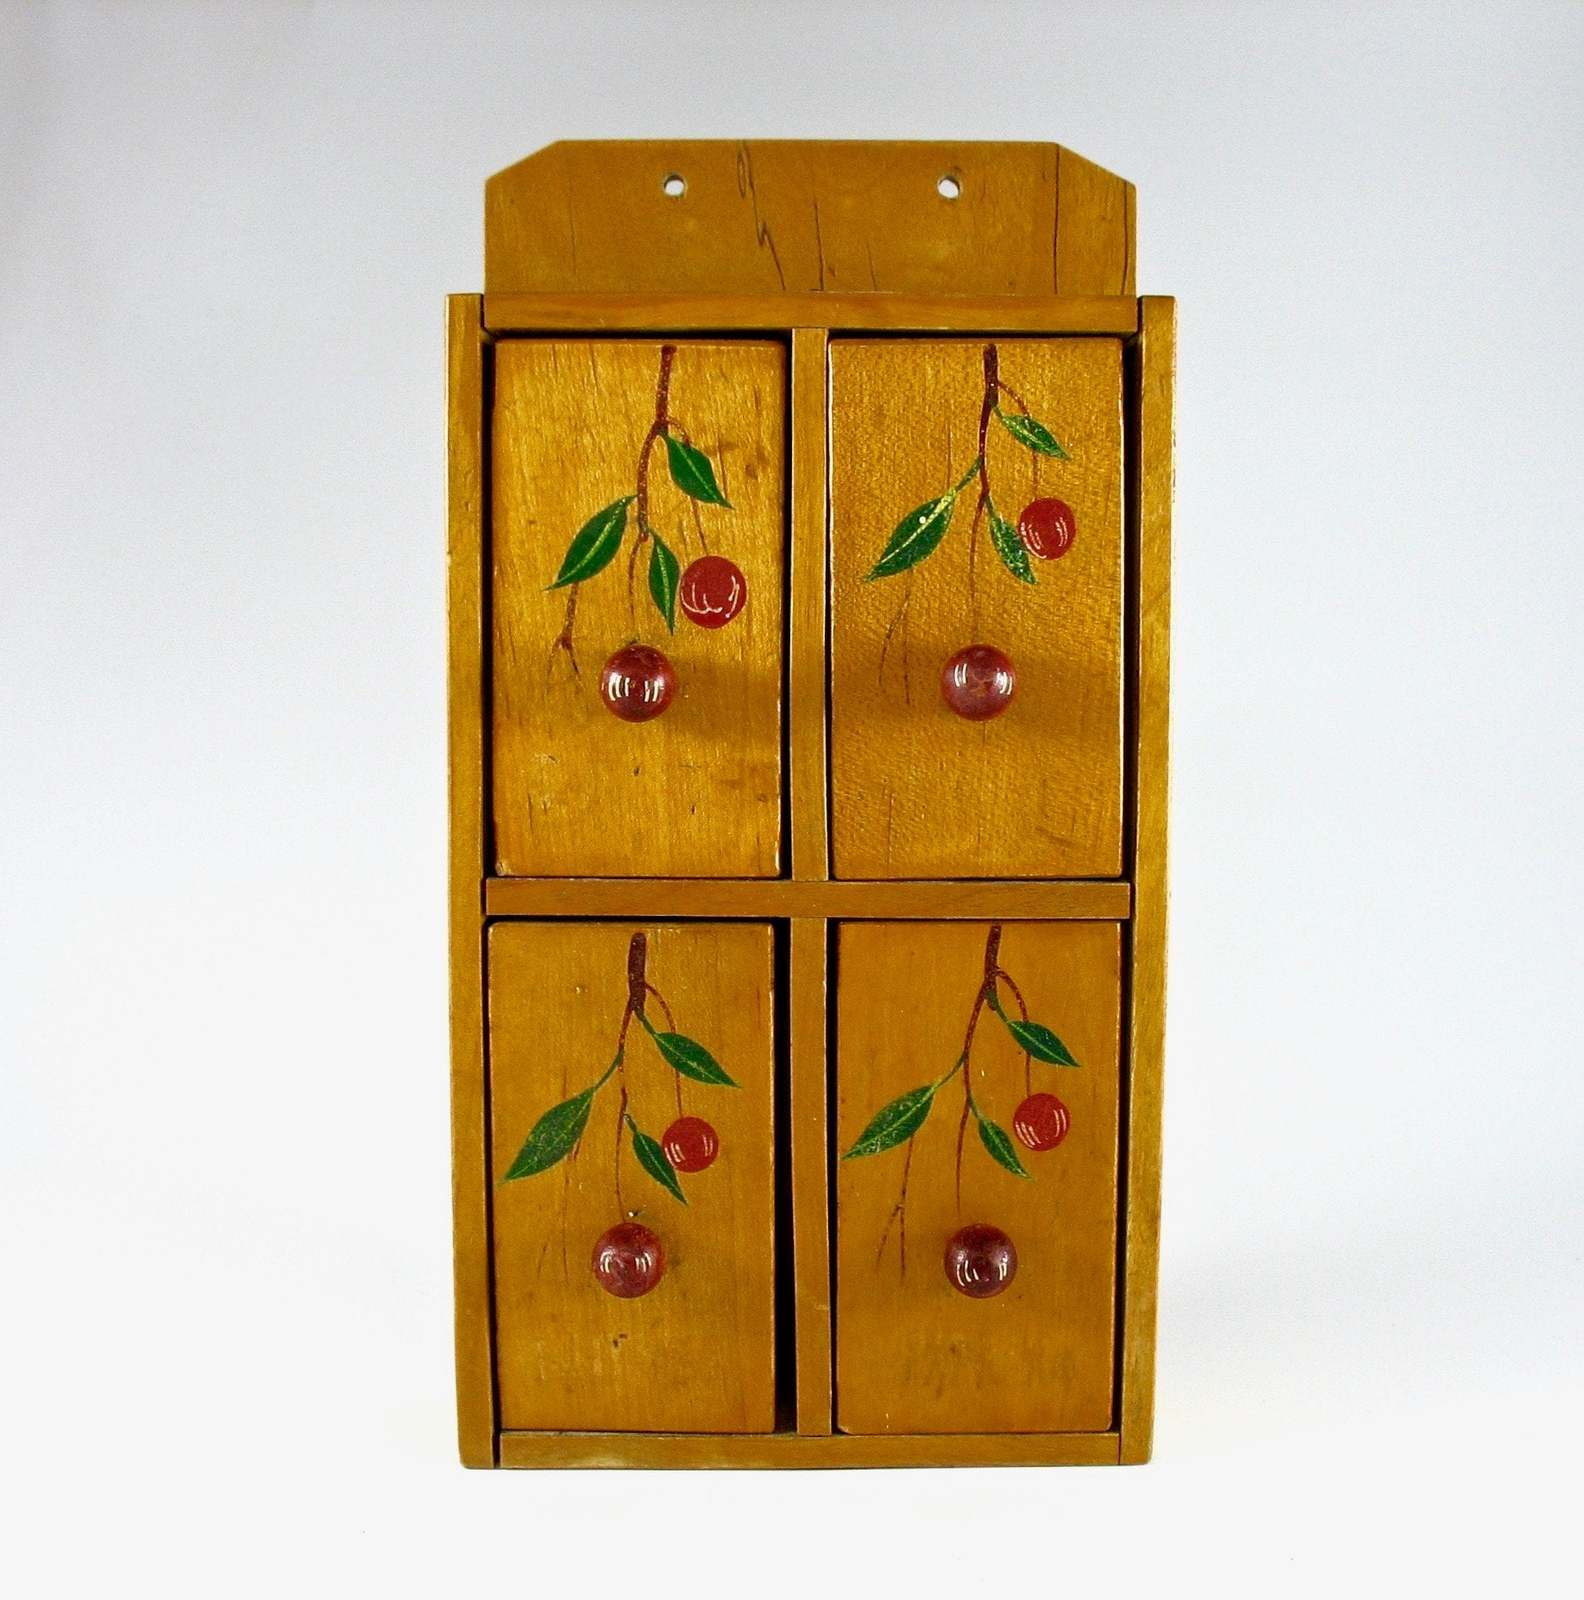 Primary image for Wooden Spice Cabinet, Spice Box, Mid-Century, Japan, Hand-Painted, Red Cherries,